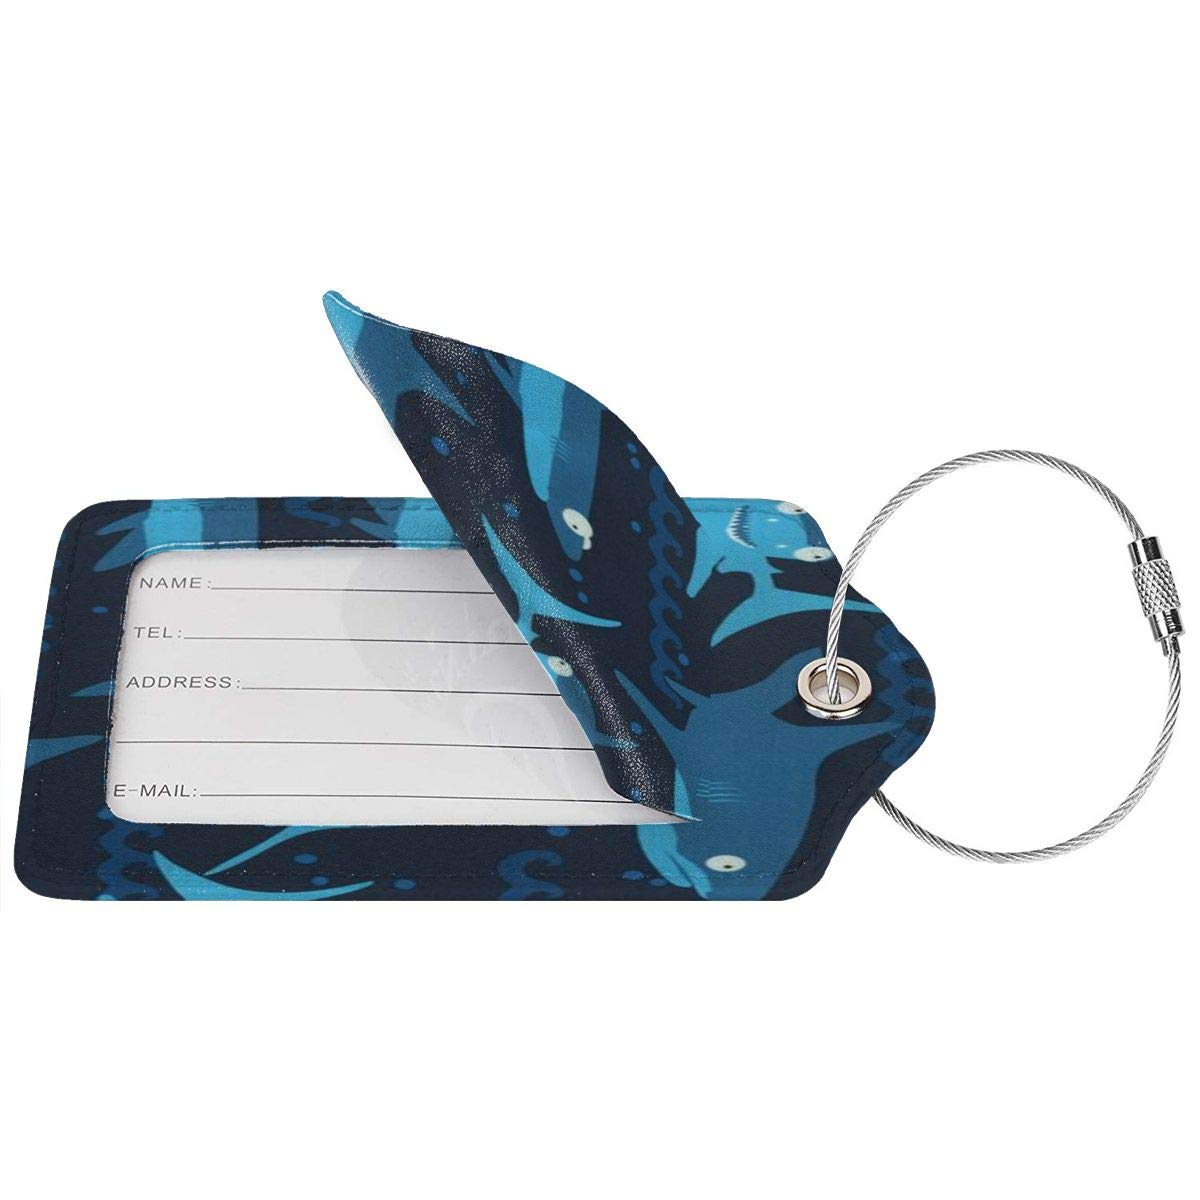 Tropical Aloha Hawaiian Luggage Tags With Full Back Privacy Cover W//Steel Loops